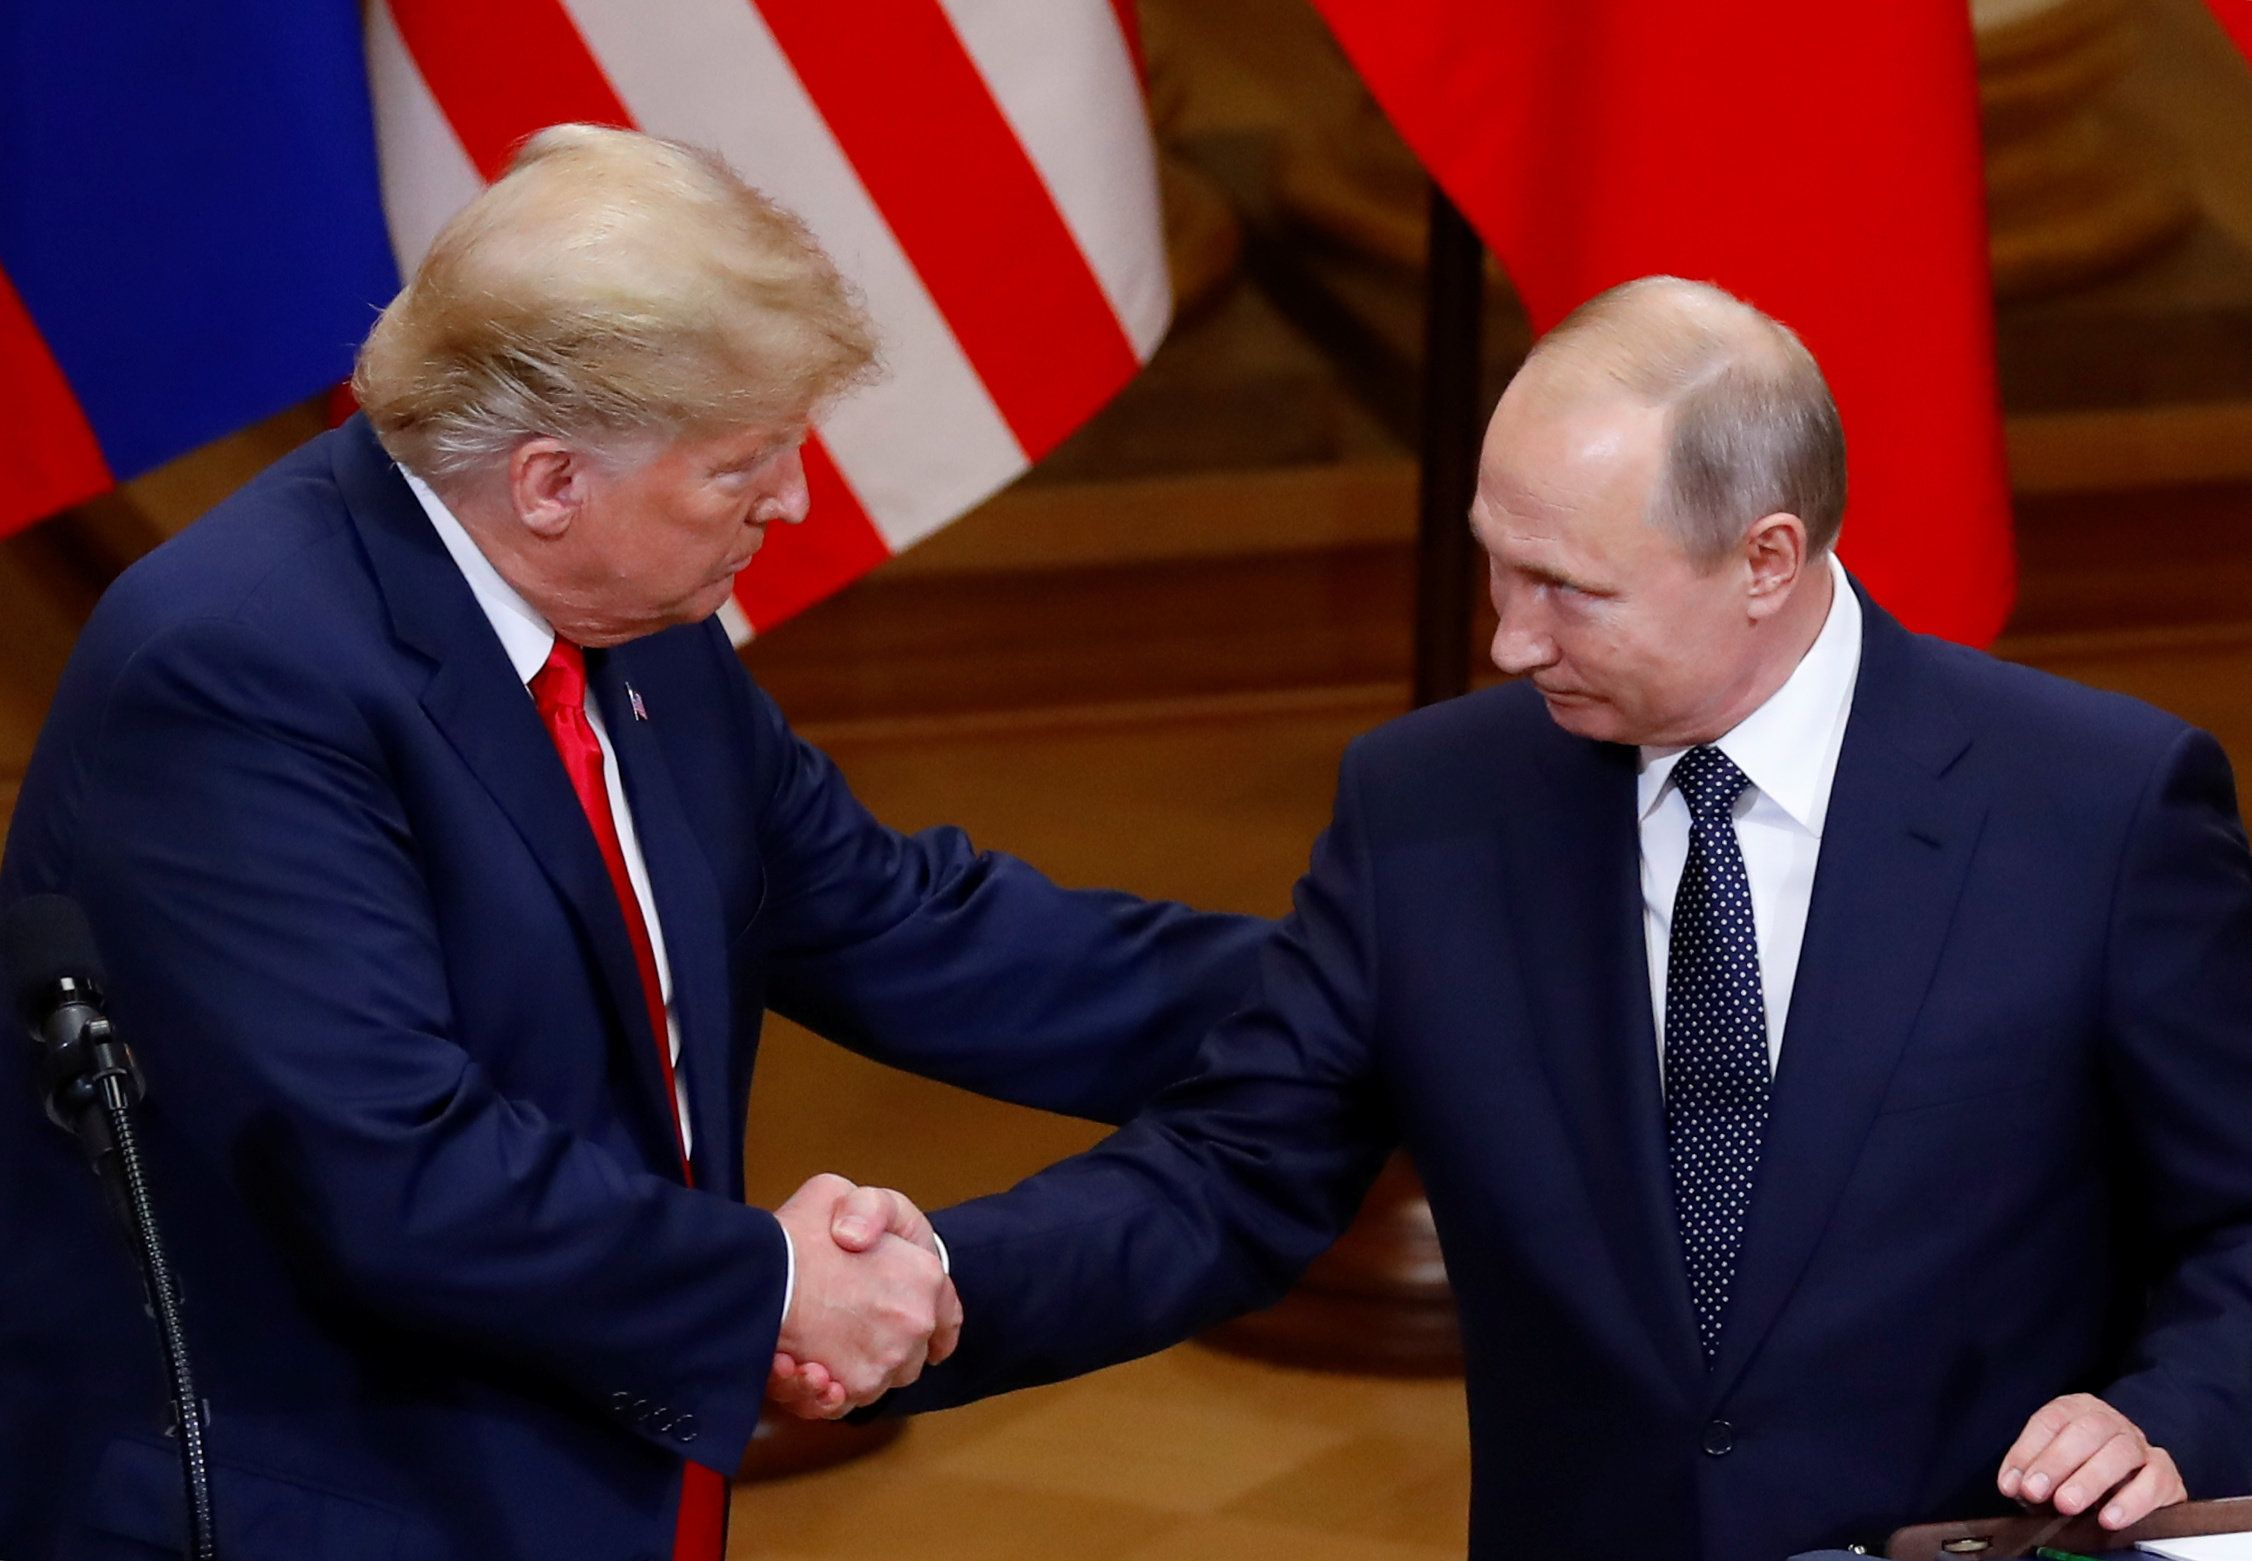 U.S. President Donald Trump and Russian President Vladimir Putin shake hands as they hold a joint news conference after their meeting in Helsinki, Finland, July 16, 2018. REUTERS/Leonhard Foeger